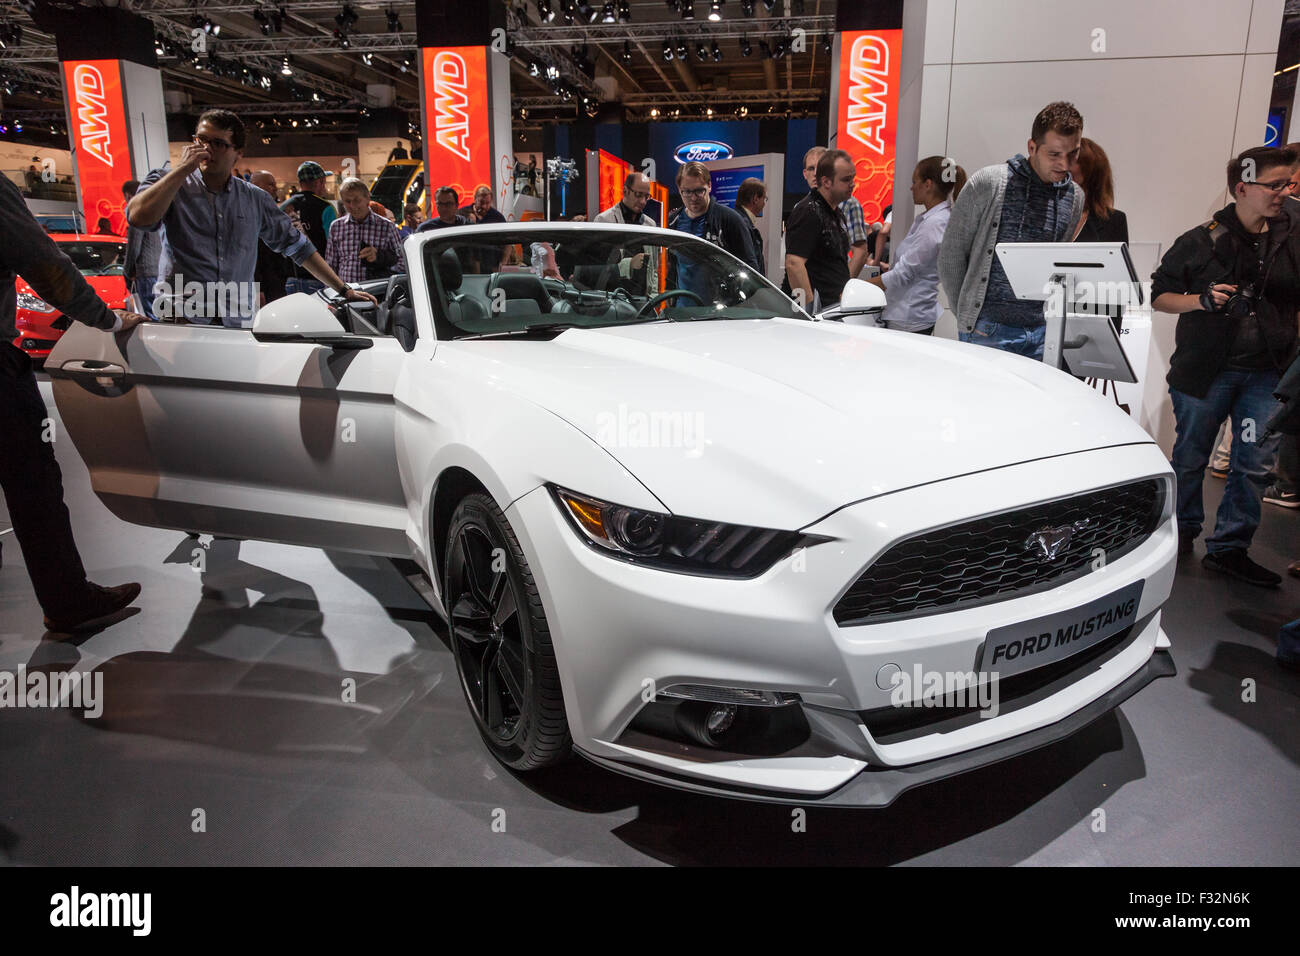 Ford Mustang Stockfotos & Ford Mustang Bilder - Seite 2 - Alamy